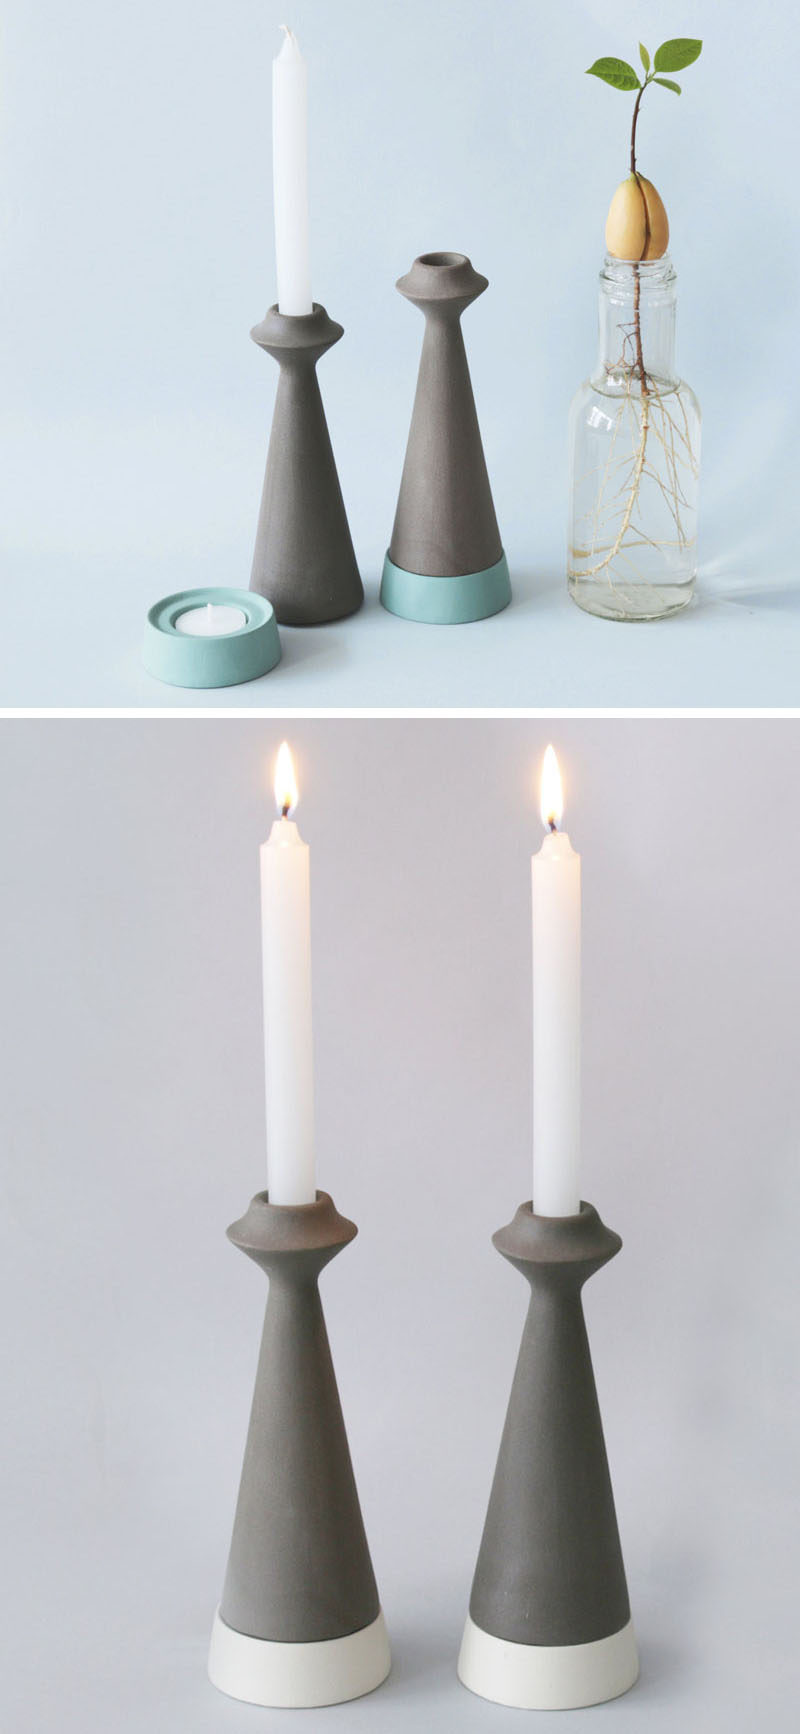 Made From Locally Sourced Basalt Rock Clay, The Candle Holders Are Designed  To Be A Two In One Modular Piece That Can Be Used To Hold Taper Candles On  Top ...